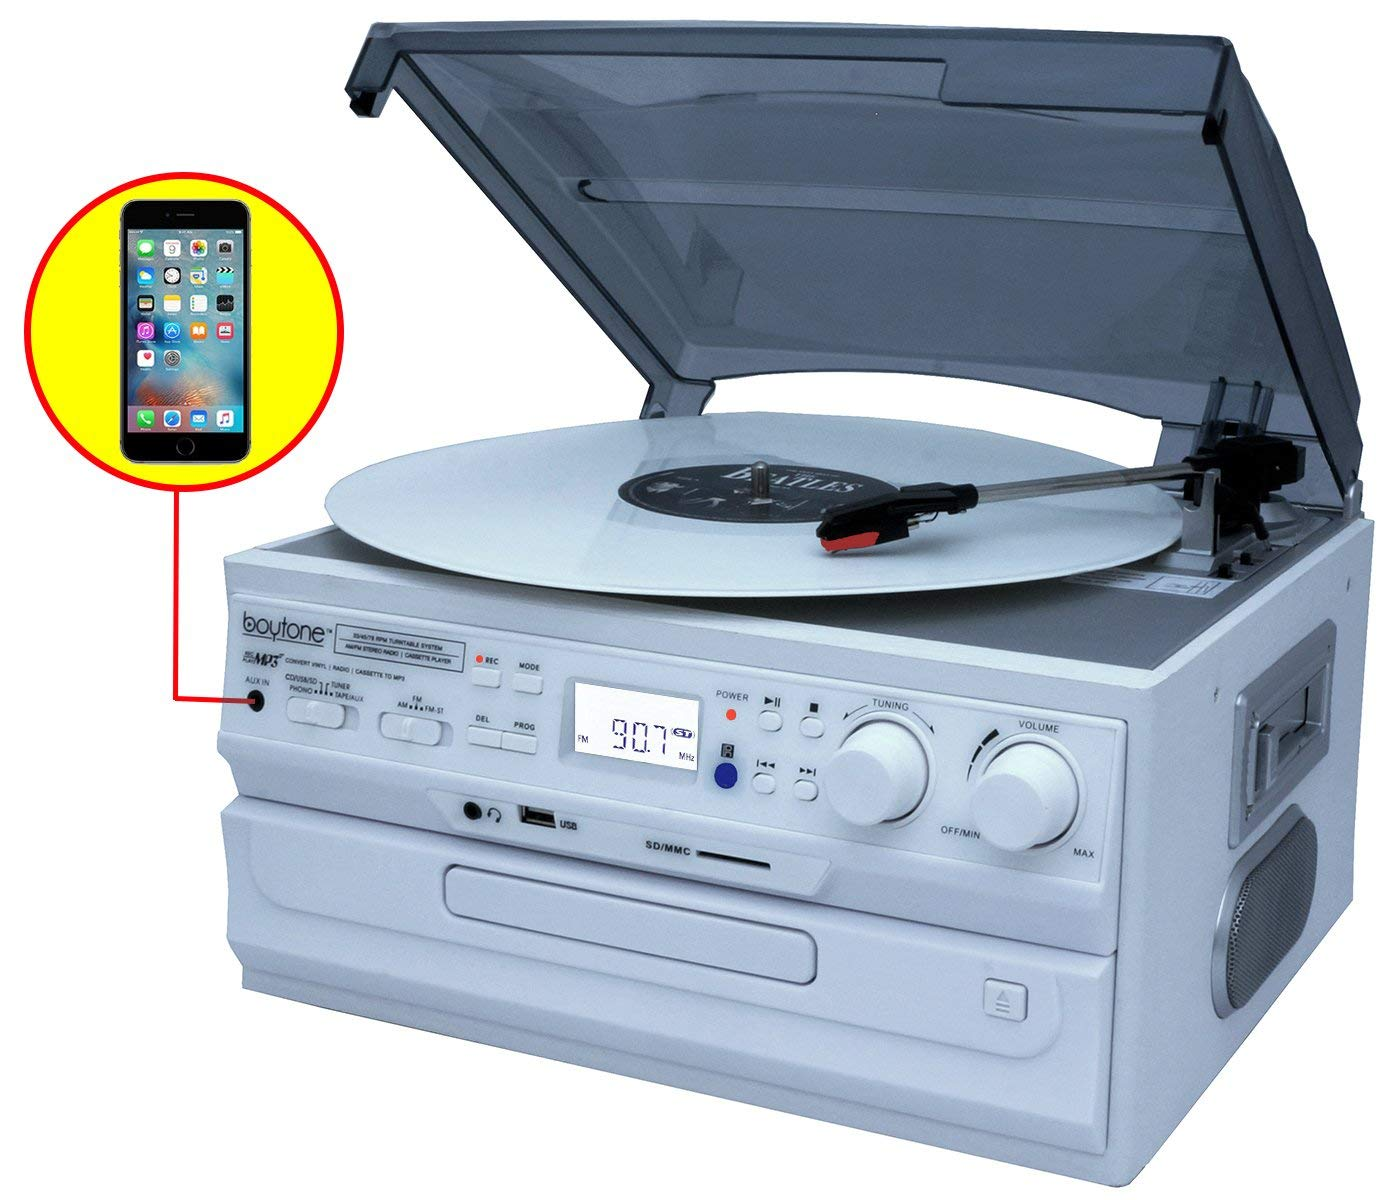 Boytone BT-21DJWT-C, Limited Edition 3 Speed Turntable Ability to convert vinyl record, CD, Cassette, AM/FM Radio into MP3 files format without a computer, USB/SD Slot, Auxiliary, 2 built in speaker.